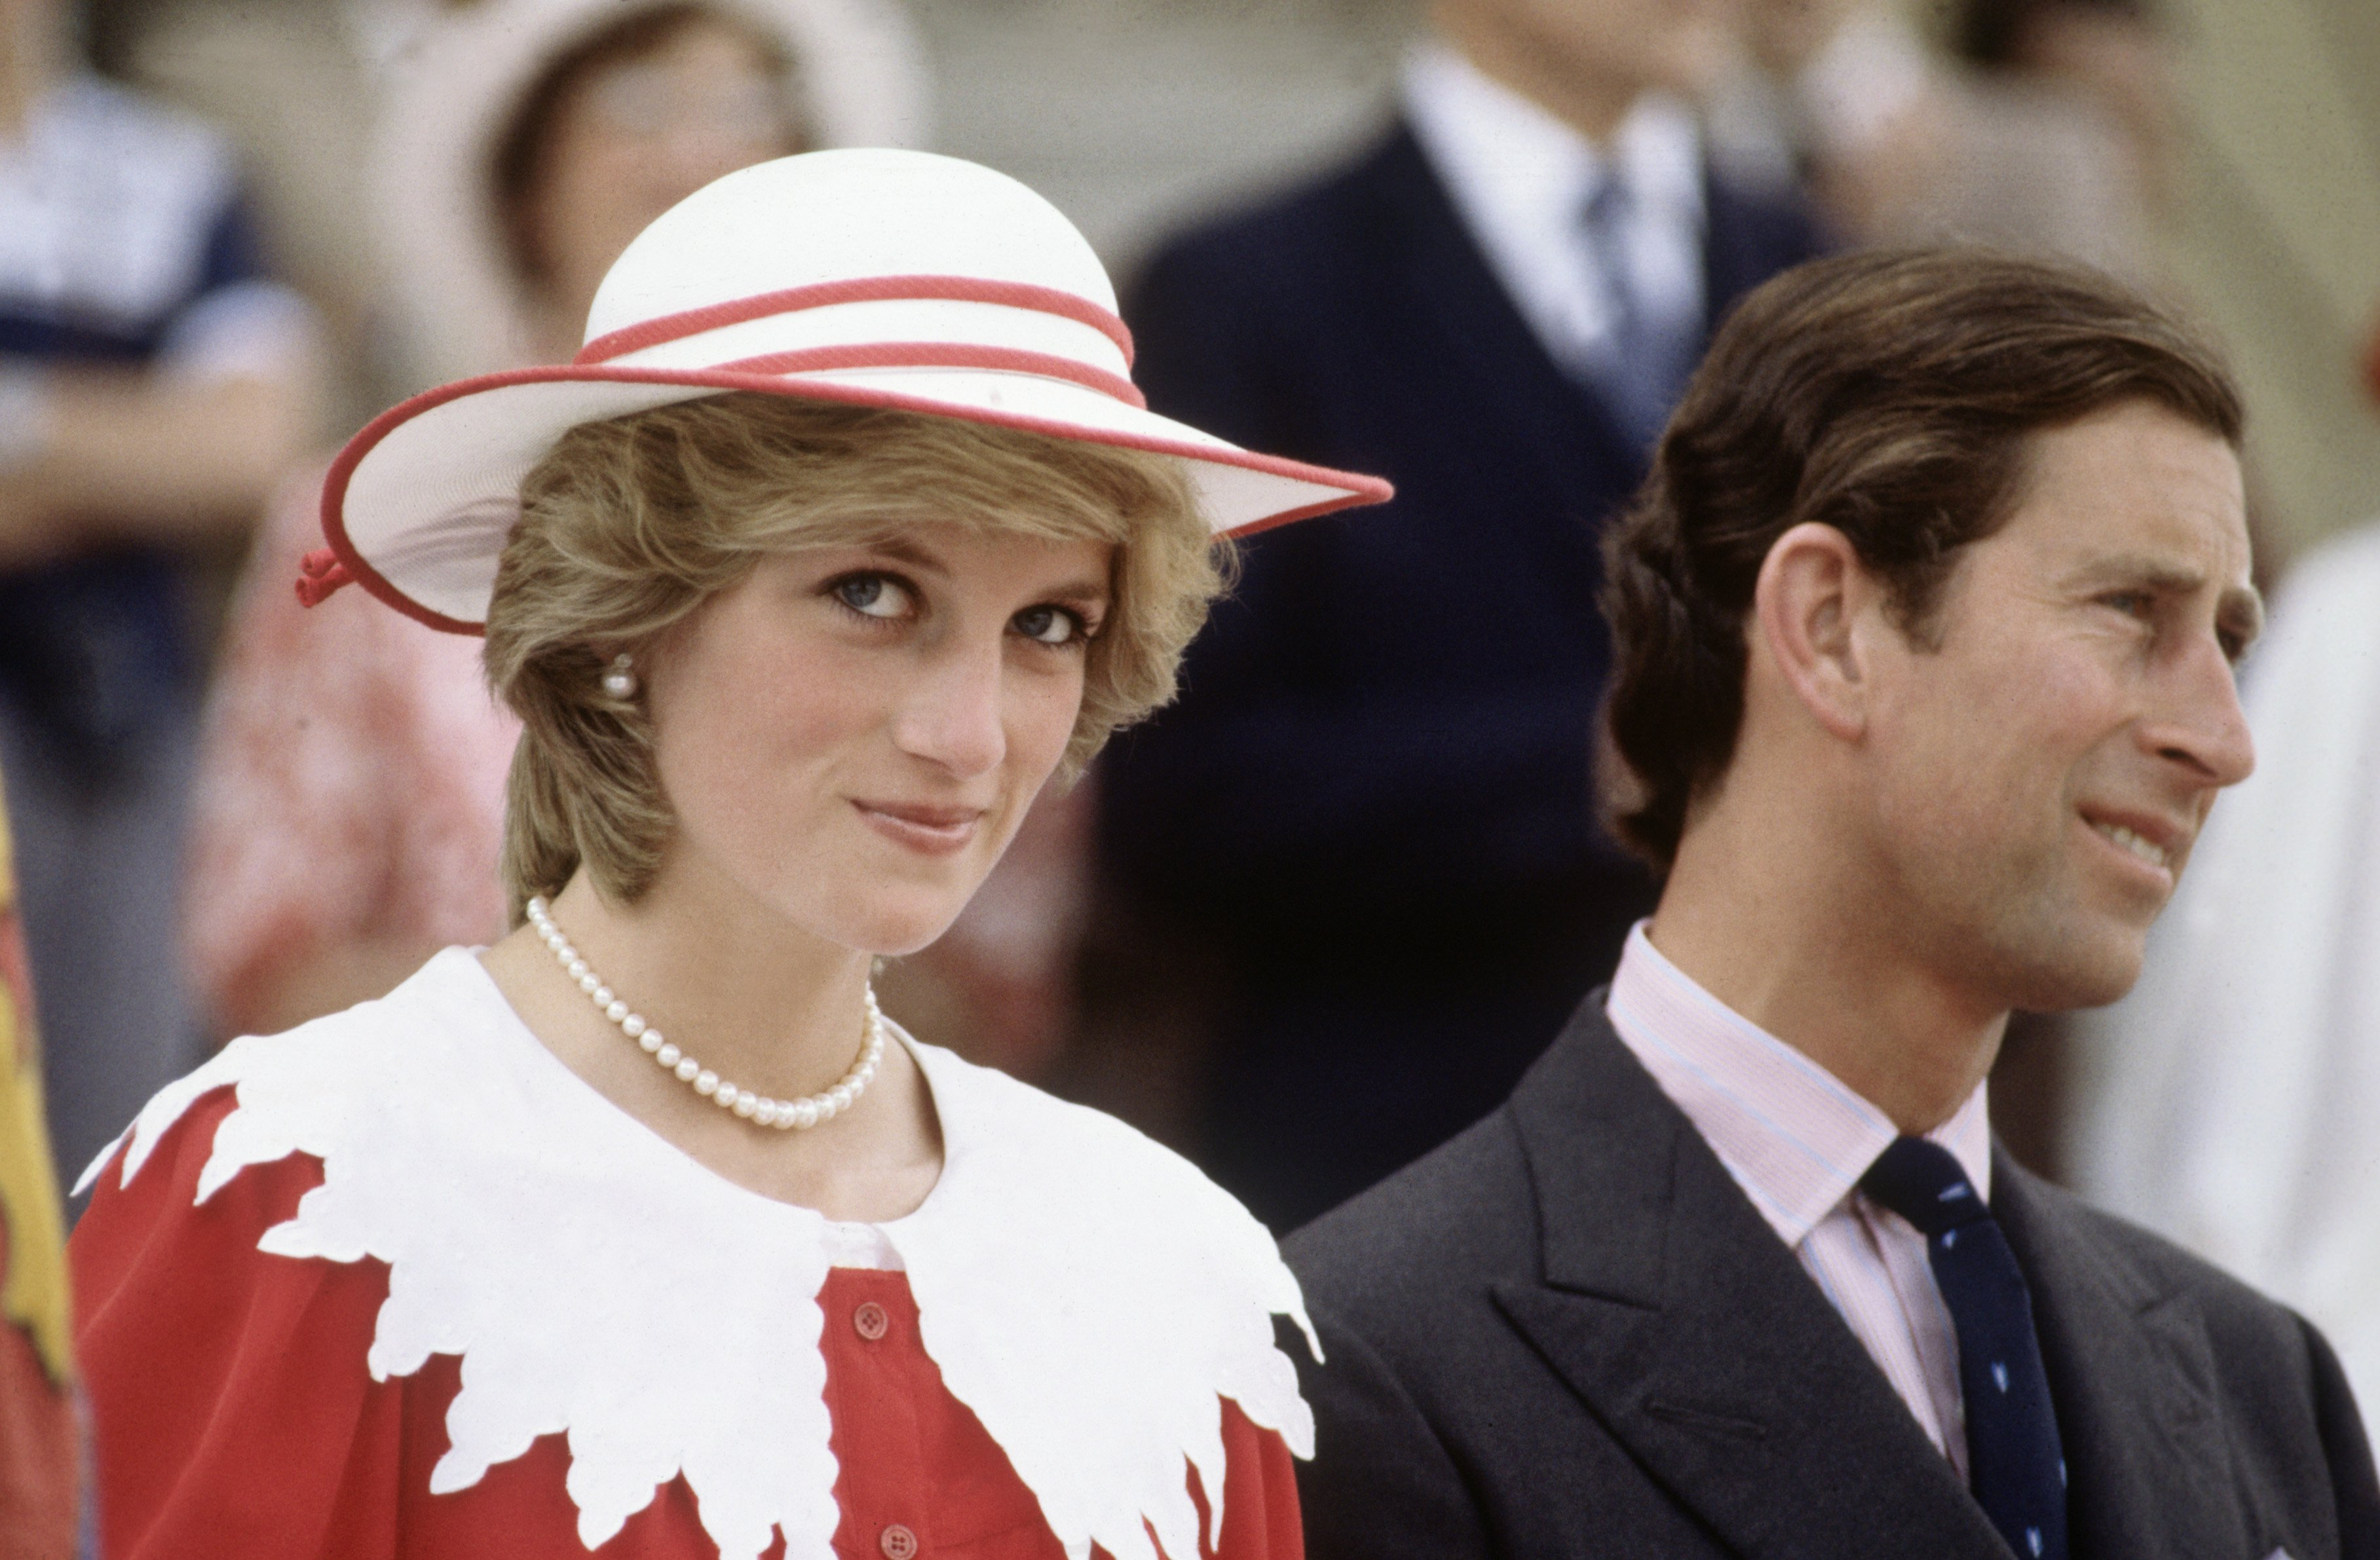 Image Source: Getty Images/Prince Diana and Prince Charles